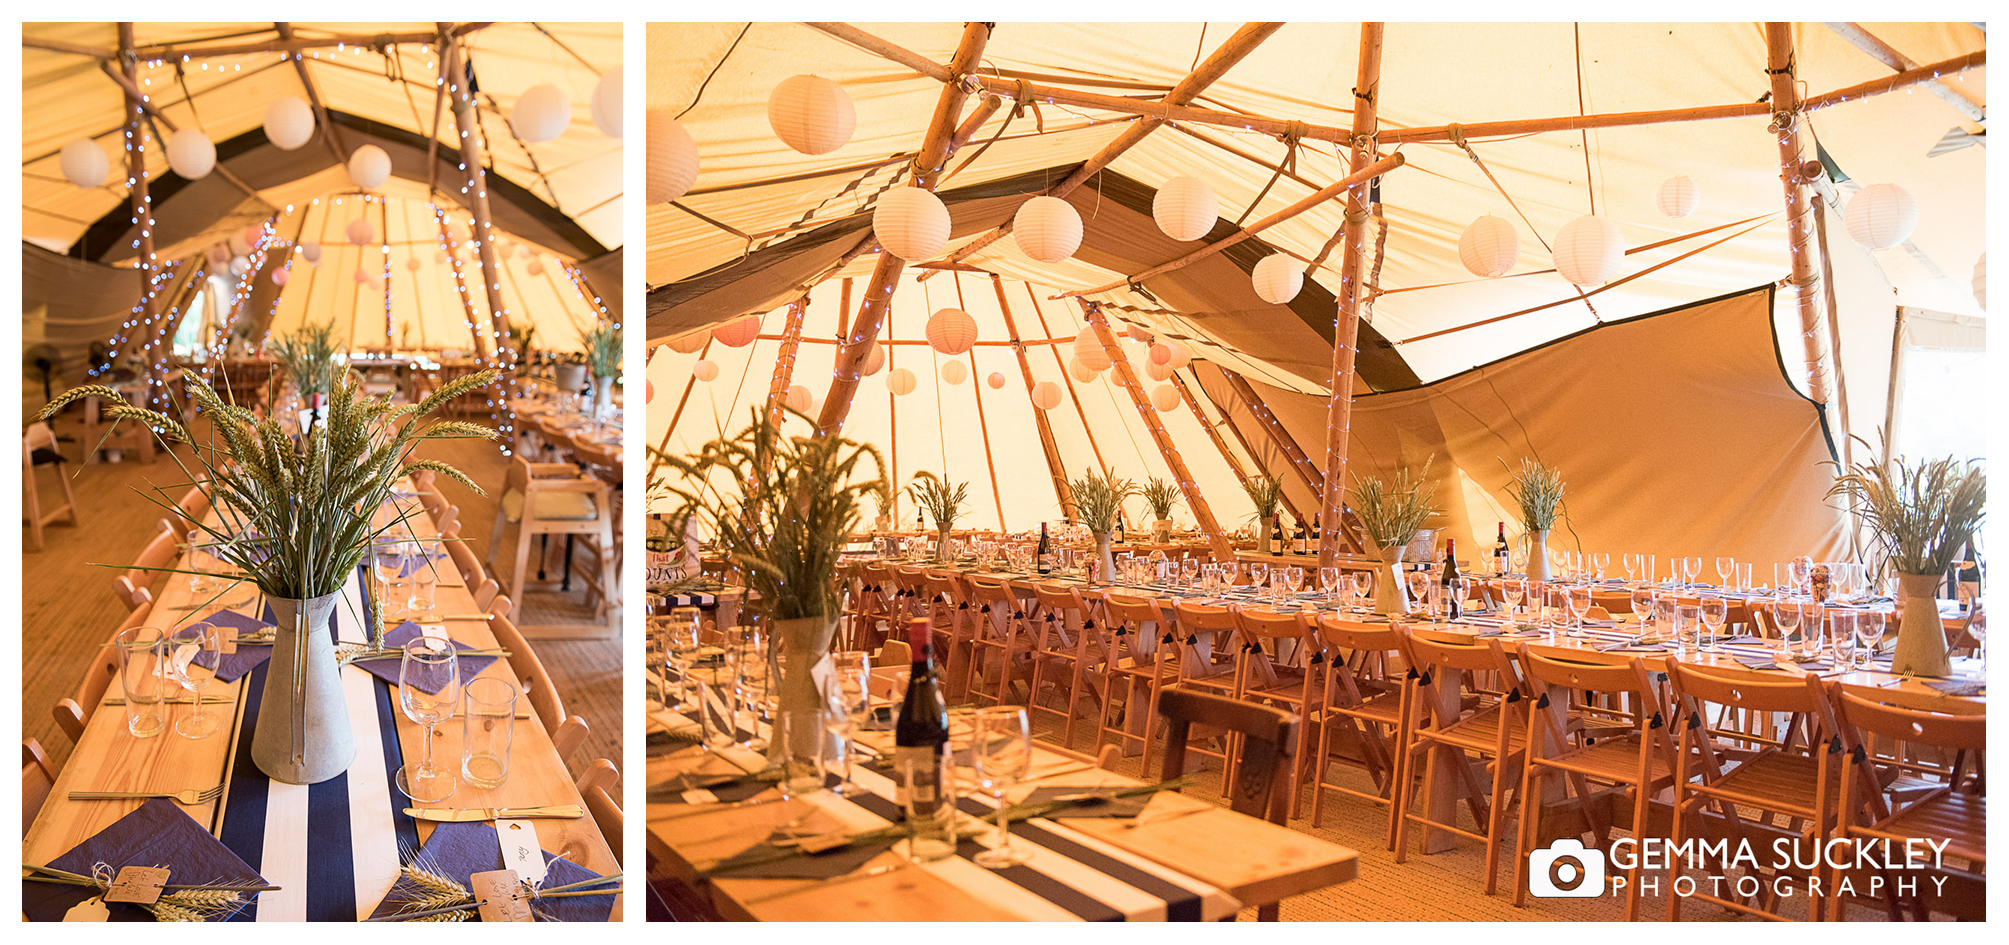 inside of the tipi at Oaklands, east Yorkshire, decorated for a wedding